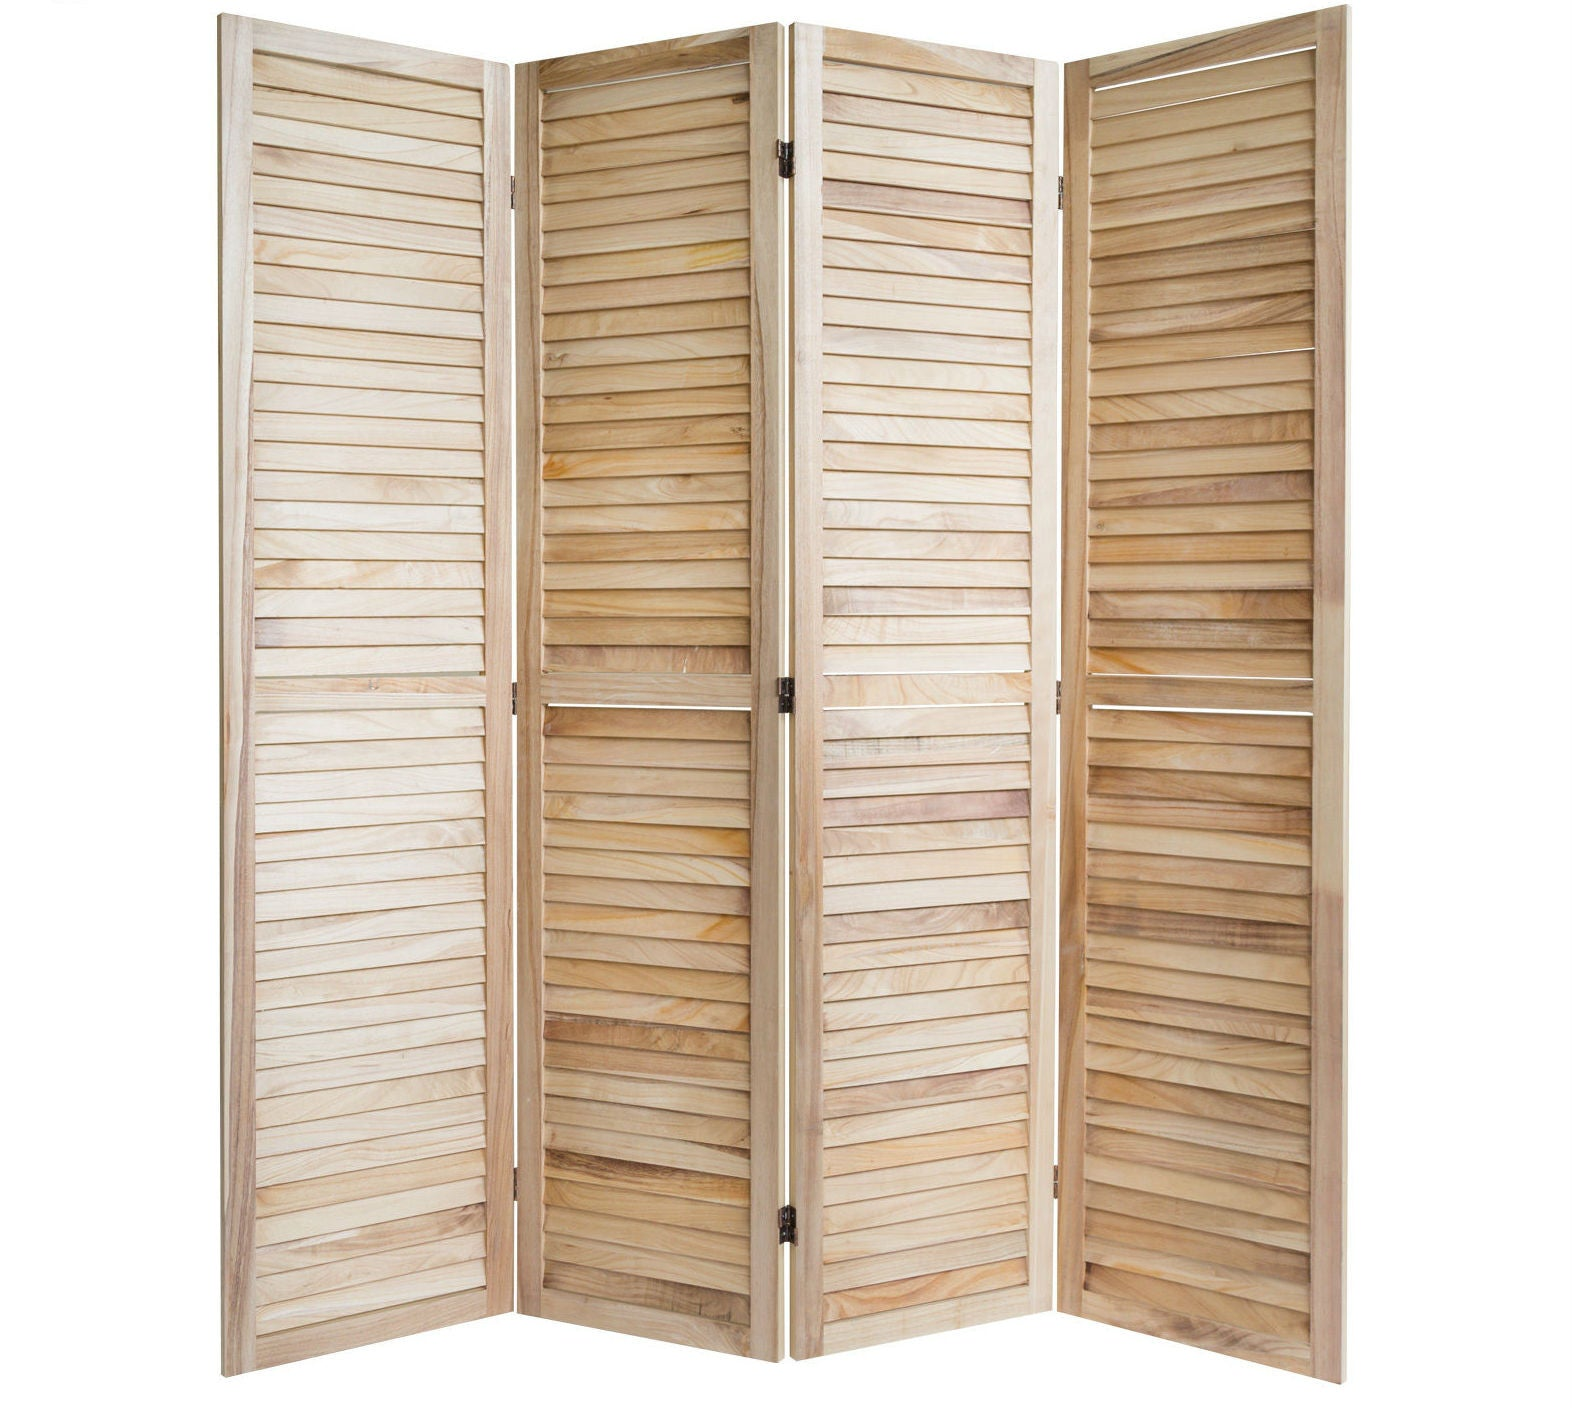 Paravent Wooden Slat Room Divider Screen - 4 Panel